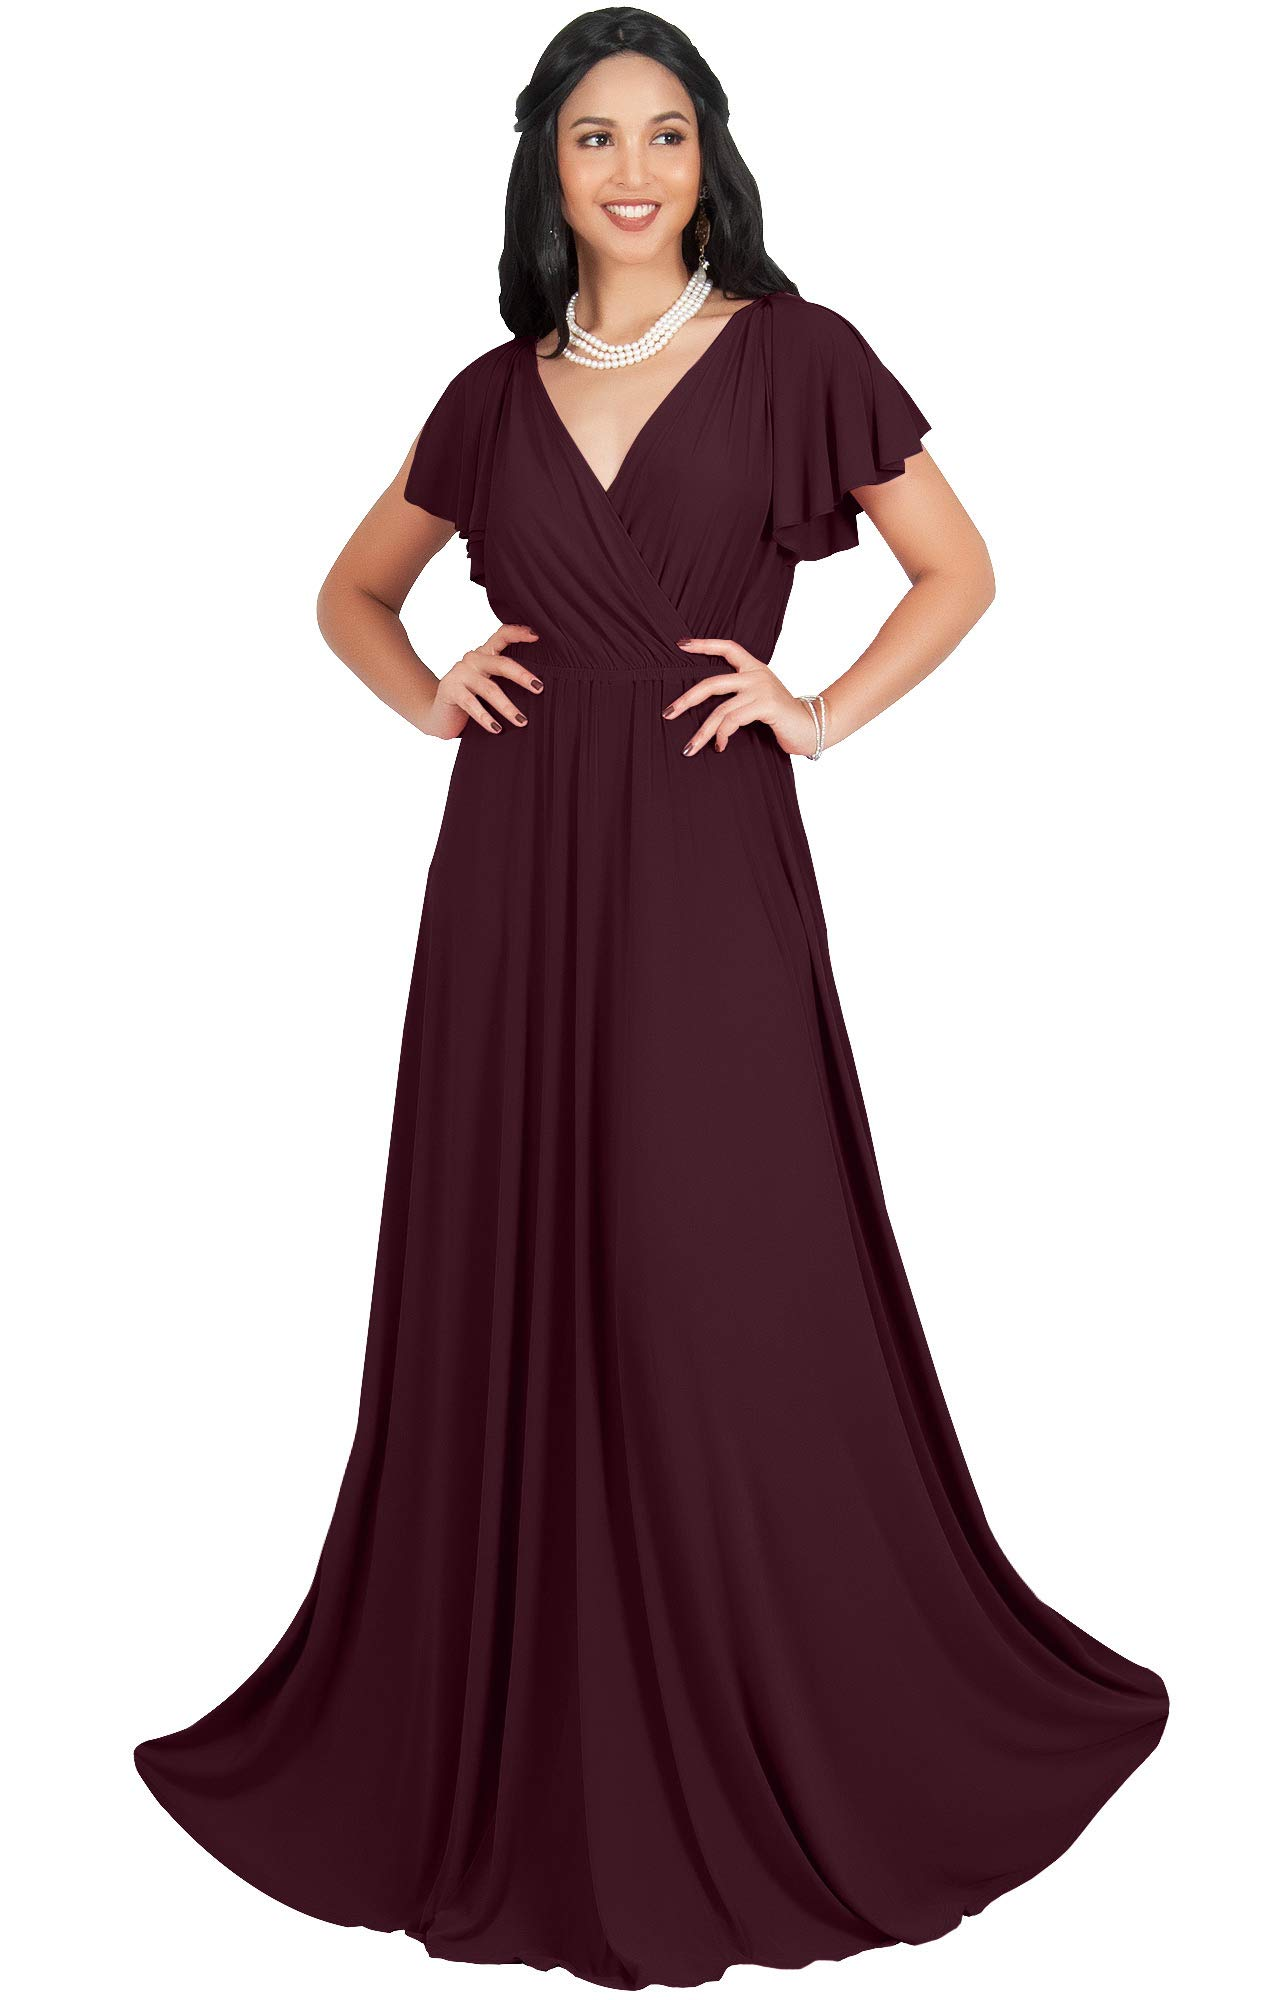 94748332a67 KOH KOH Plus Size Womens Long V Neck Sleeveless Flowy Prom Evening Wedding Party  Guest Bridesmaid Formal Cocktail Summer Floor Length Gown Gowns Maxi Dress  ...